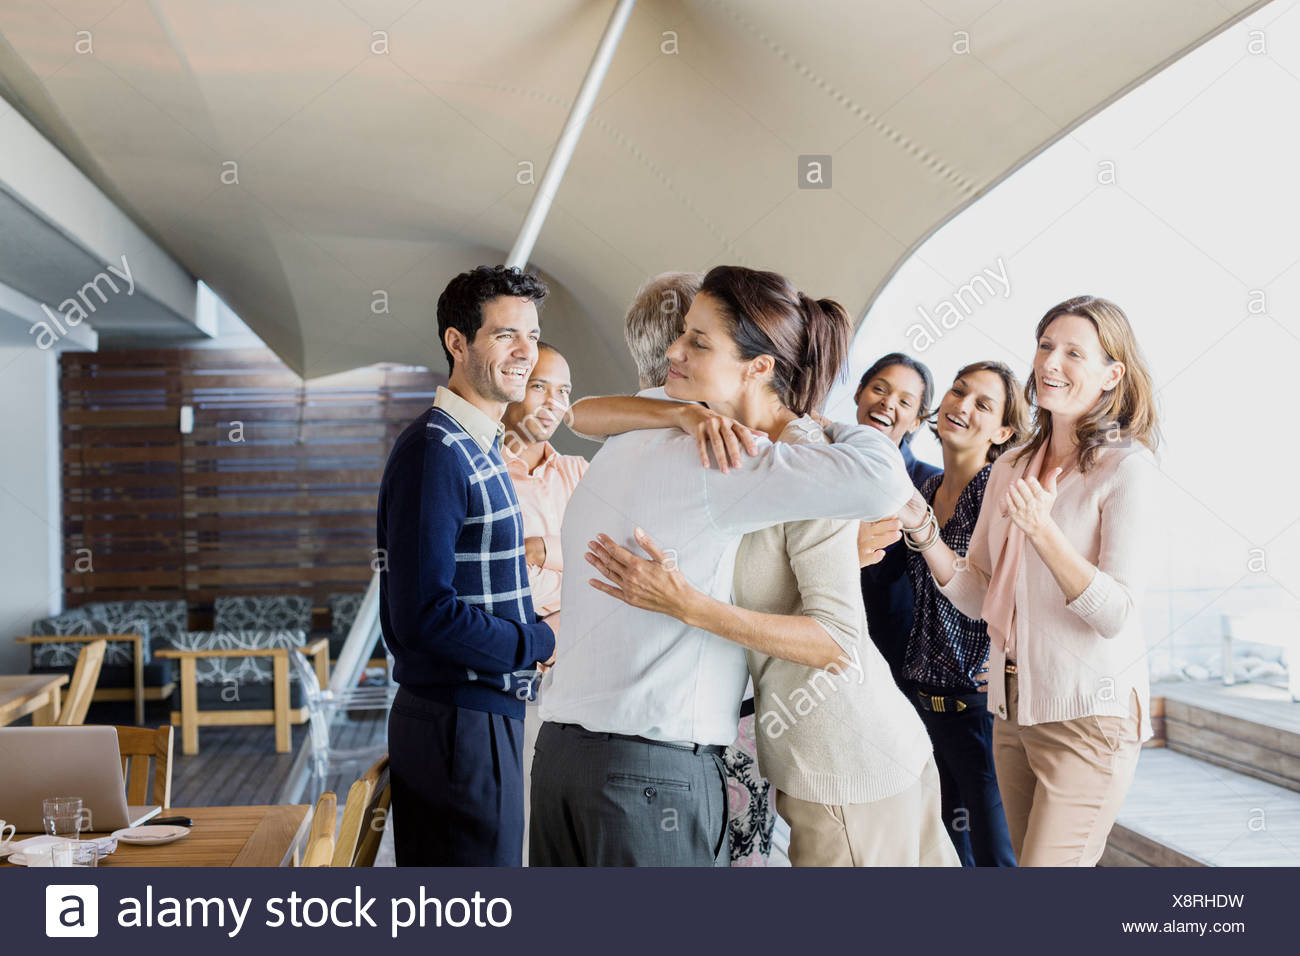 Business people hugging in office - Stock Image